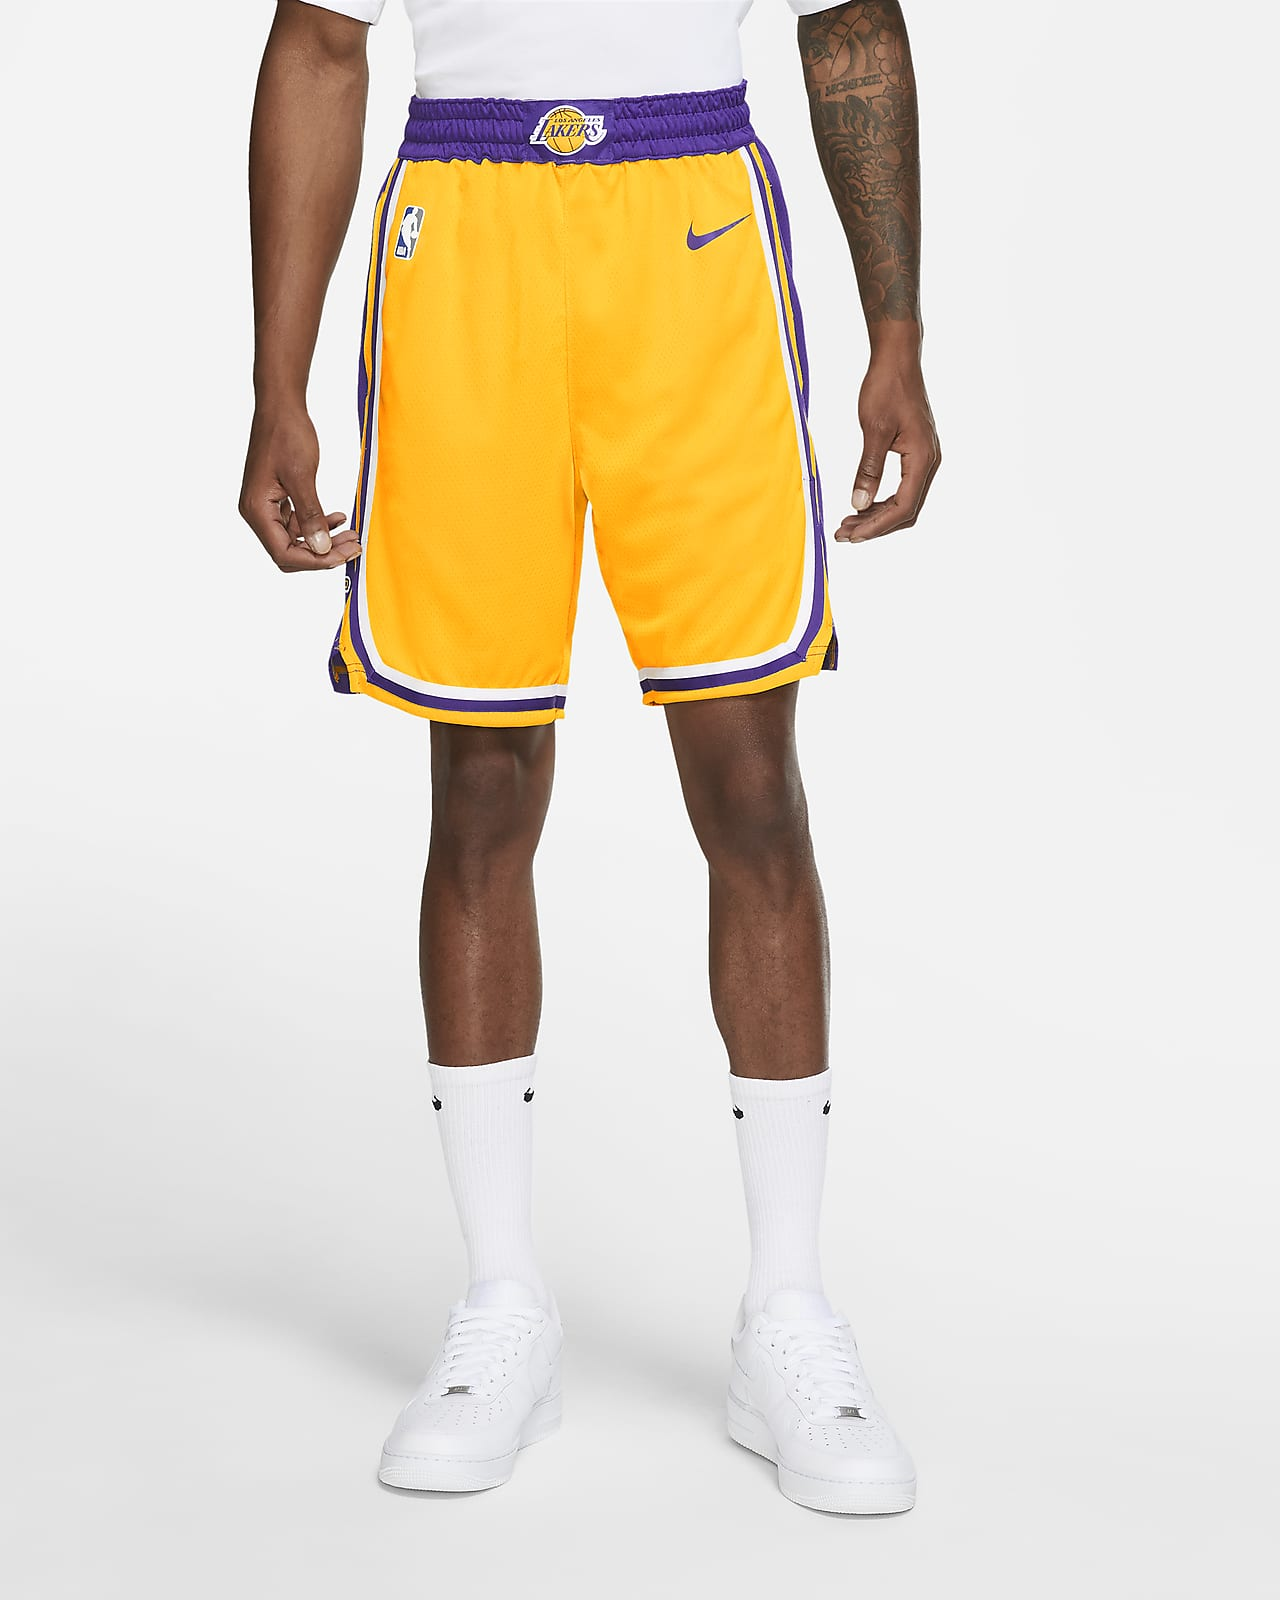 Los Angeles Lakers Icon Edition Nike NBA Swingman férfi rövidnadrág